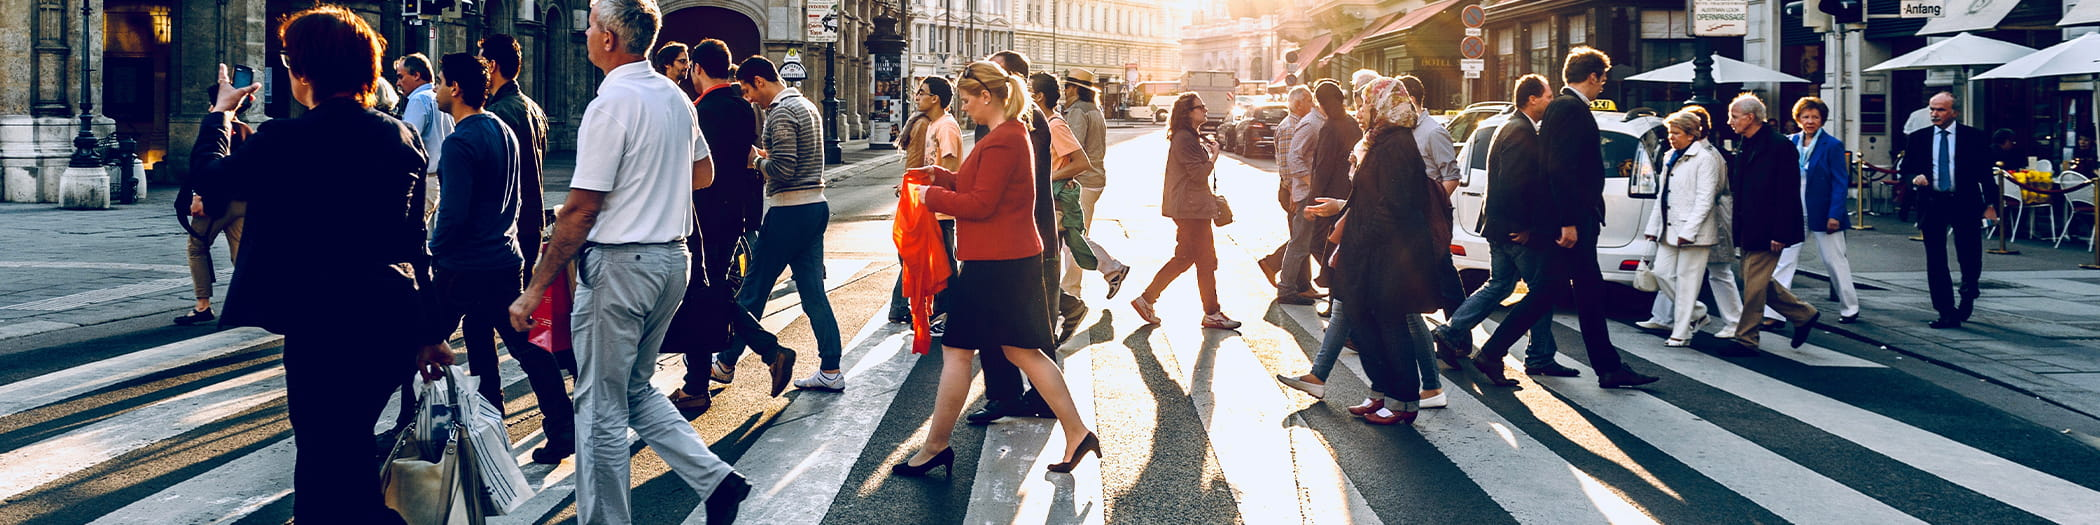 sociology picture with men and women walking across the street in a city in casual and work attire in blue, white, red and black colors